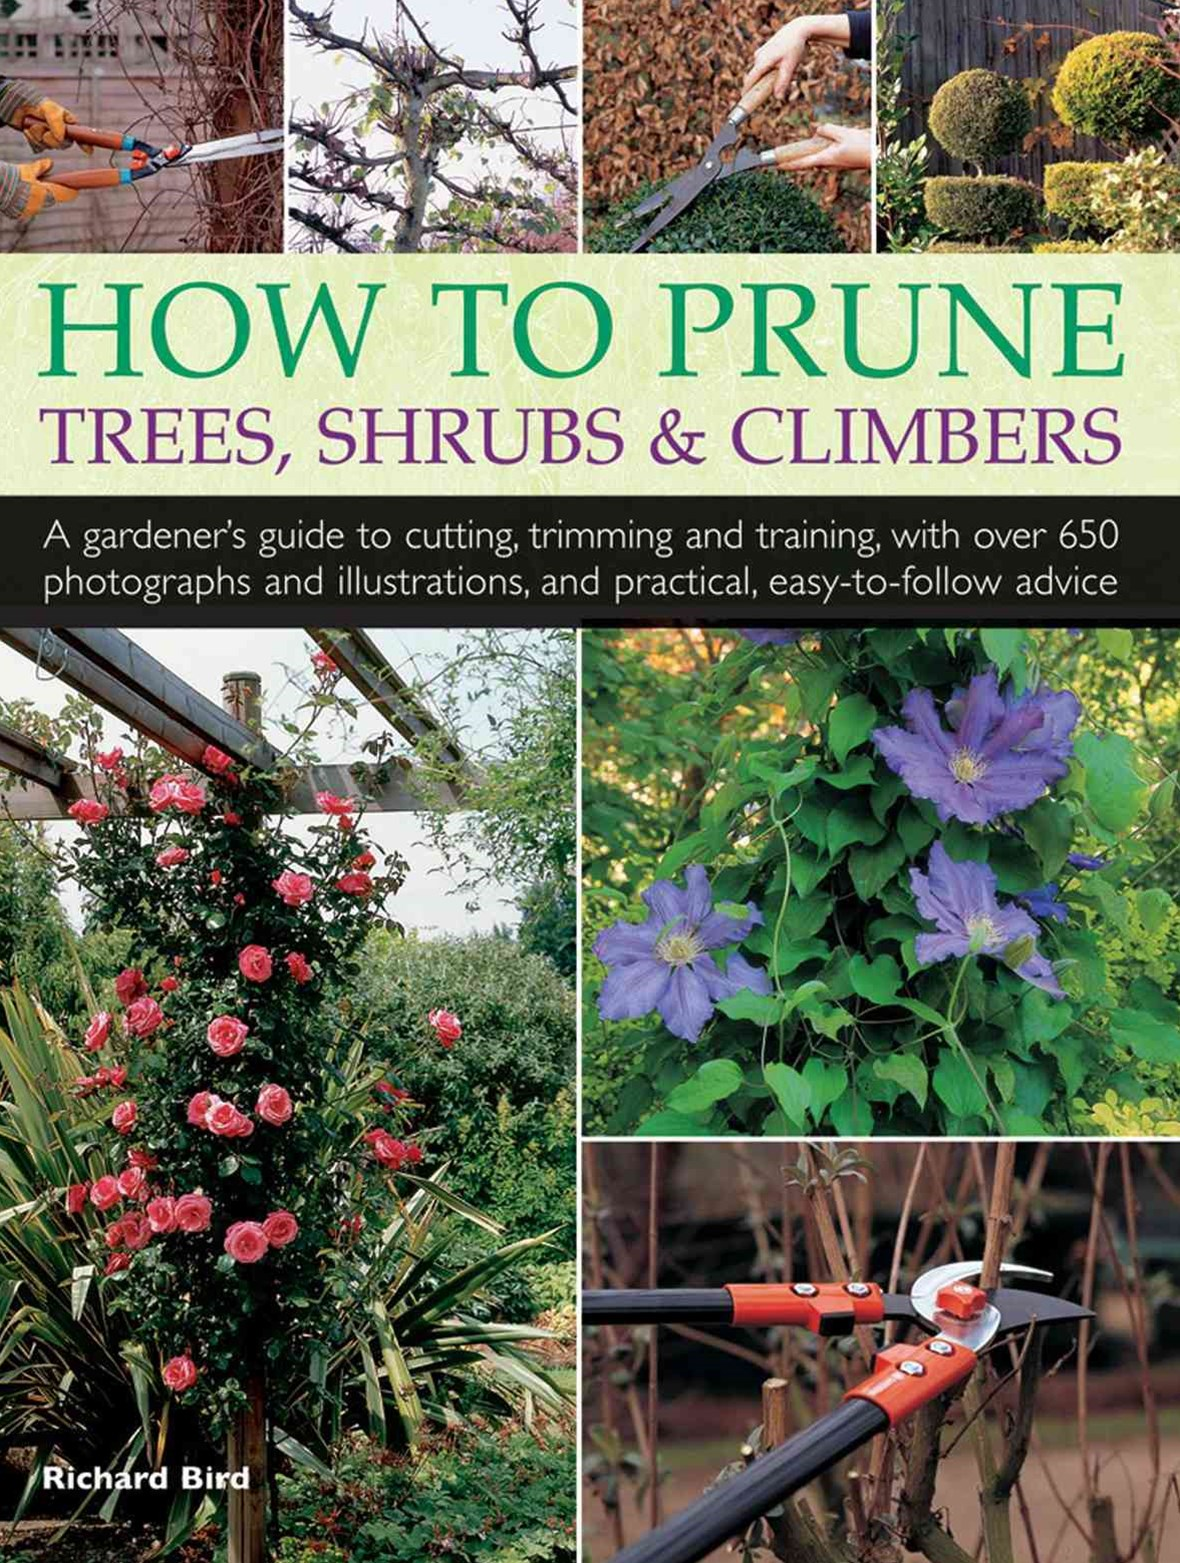 How to Prune Trees, Shrubs and Climbers